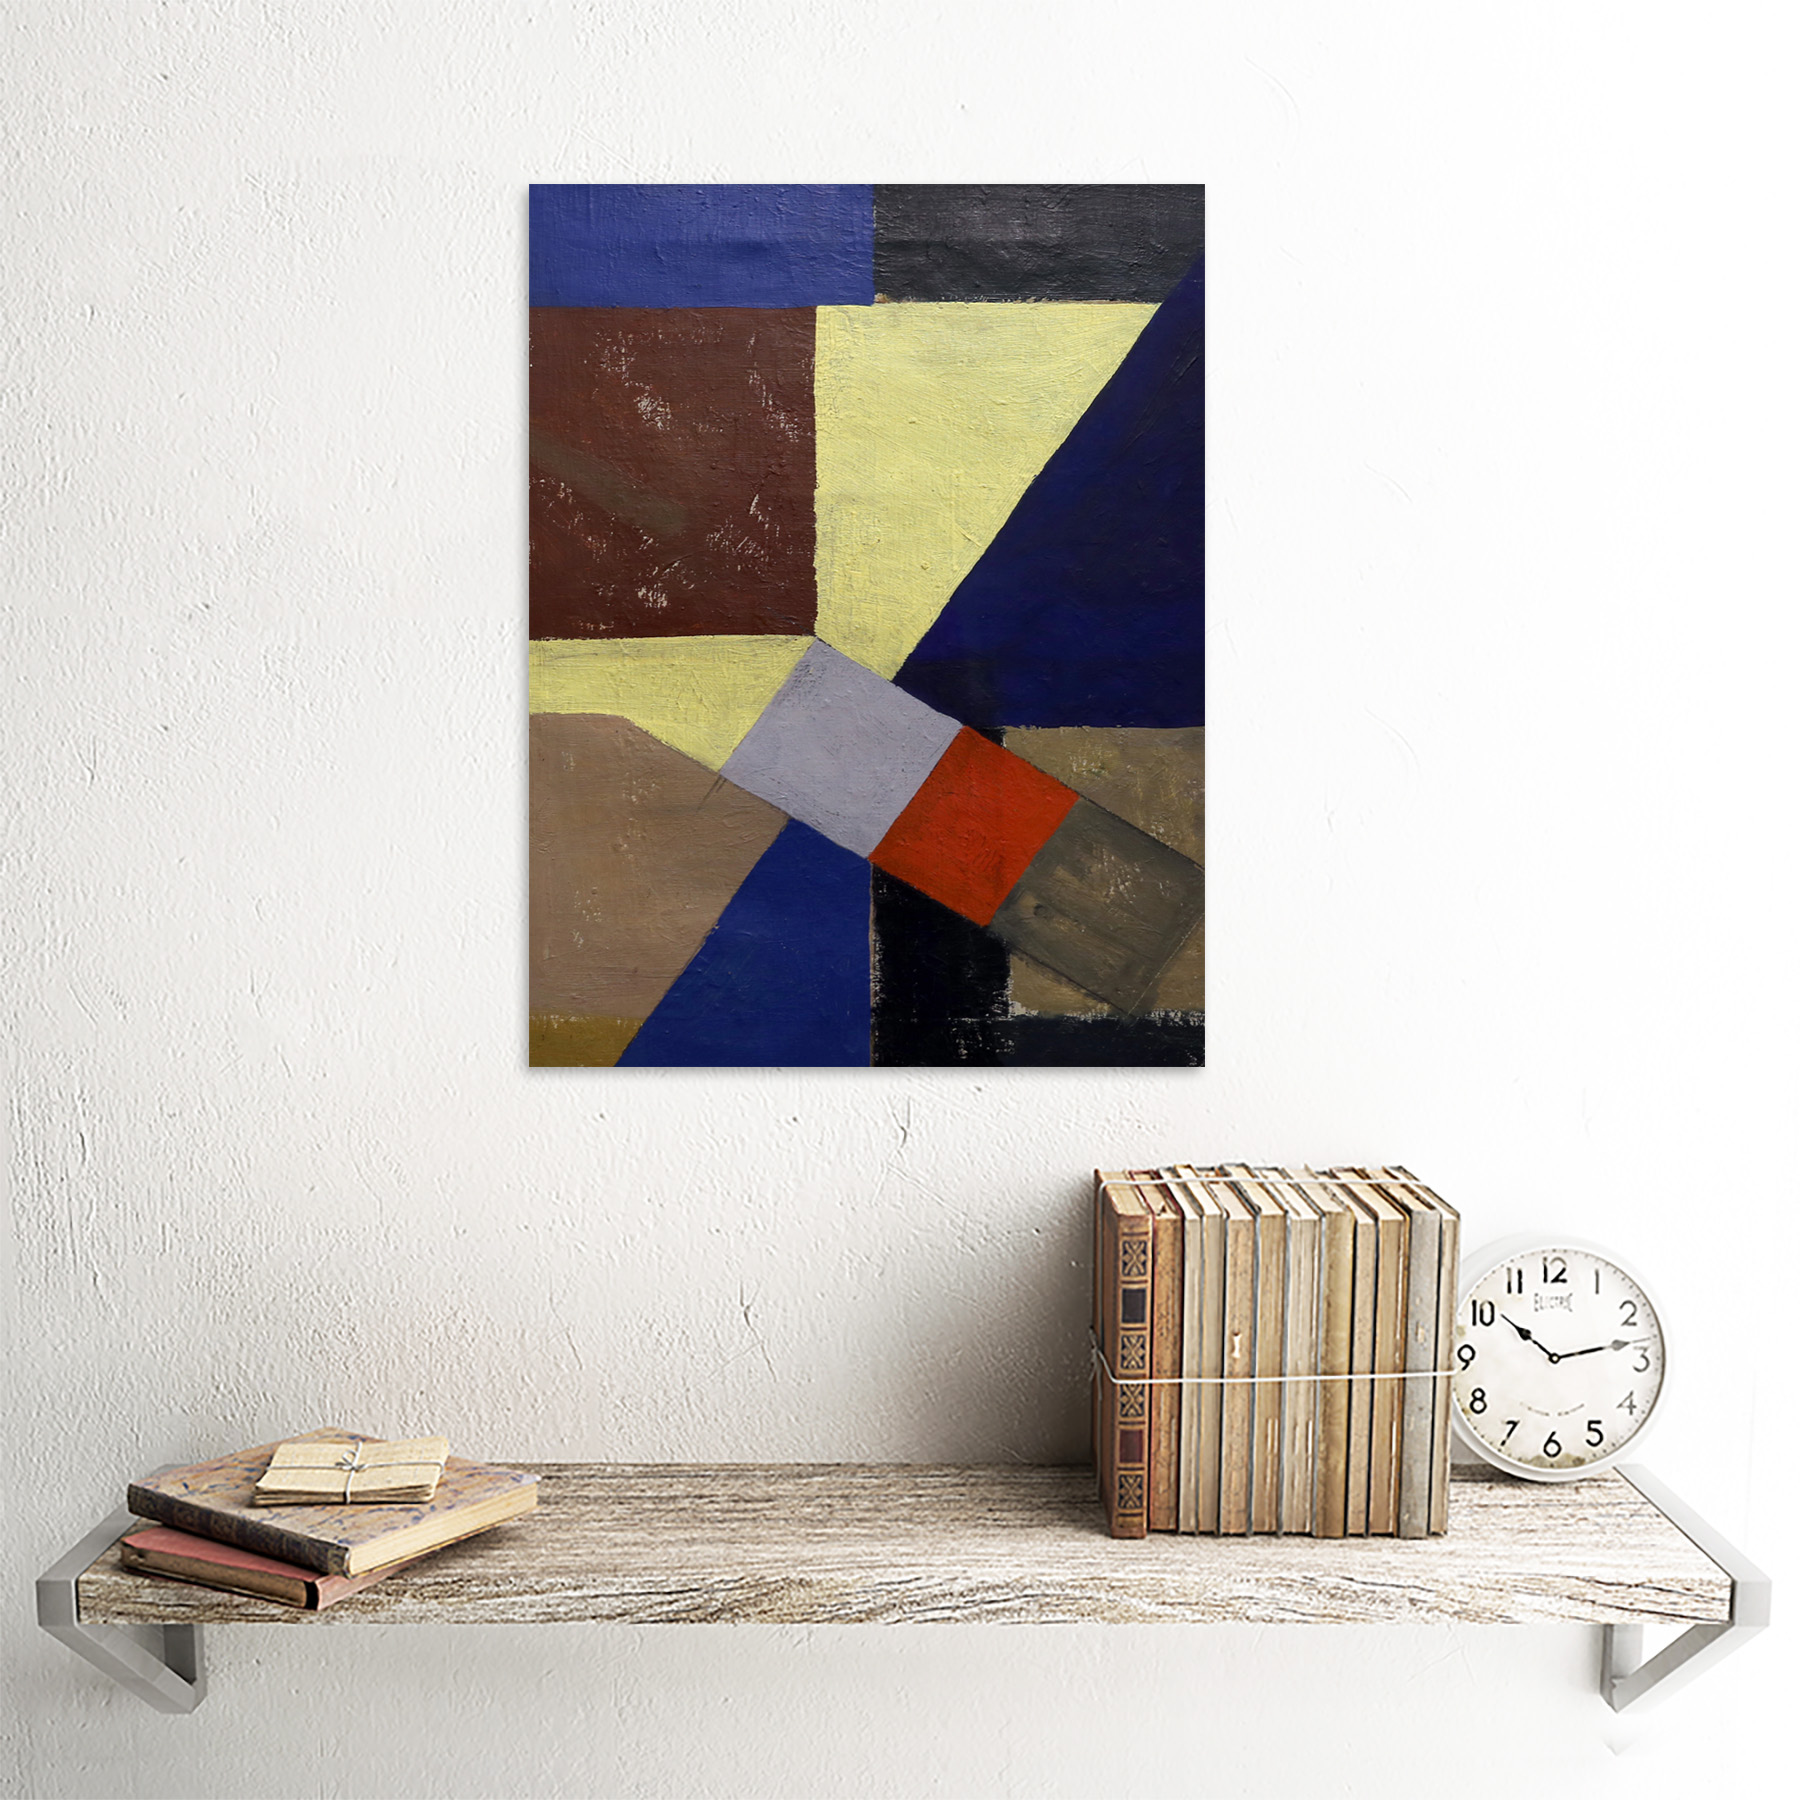 Schwitters-Kurt-Abstract-Composition-Painting-Wall-Art-Print-Framed-12x16 thumbnail 23